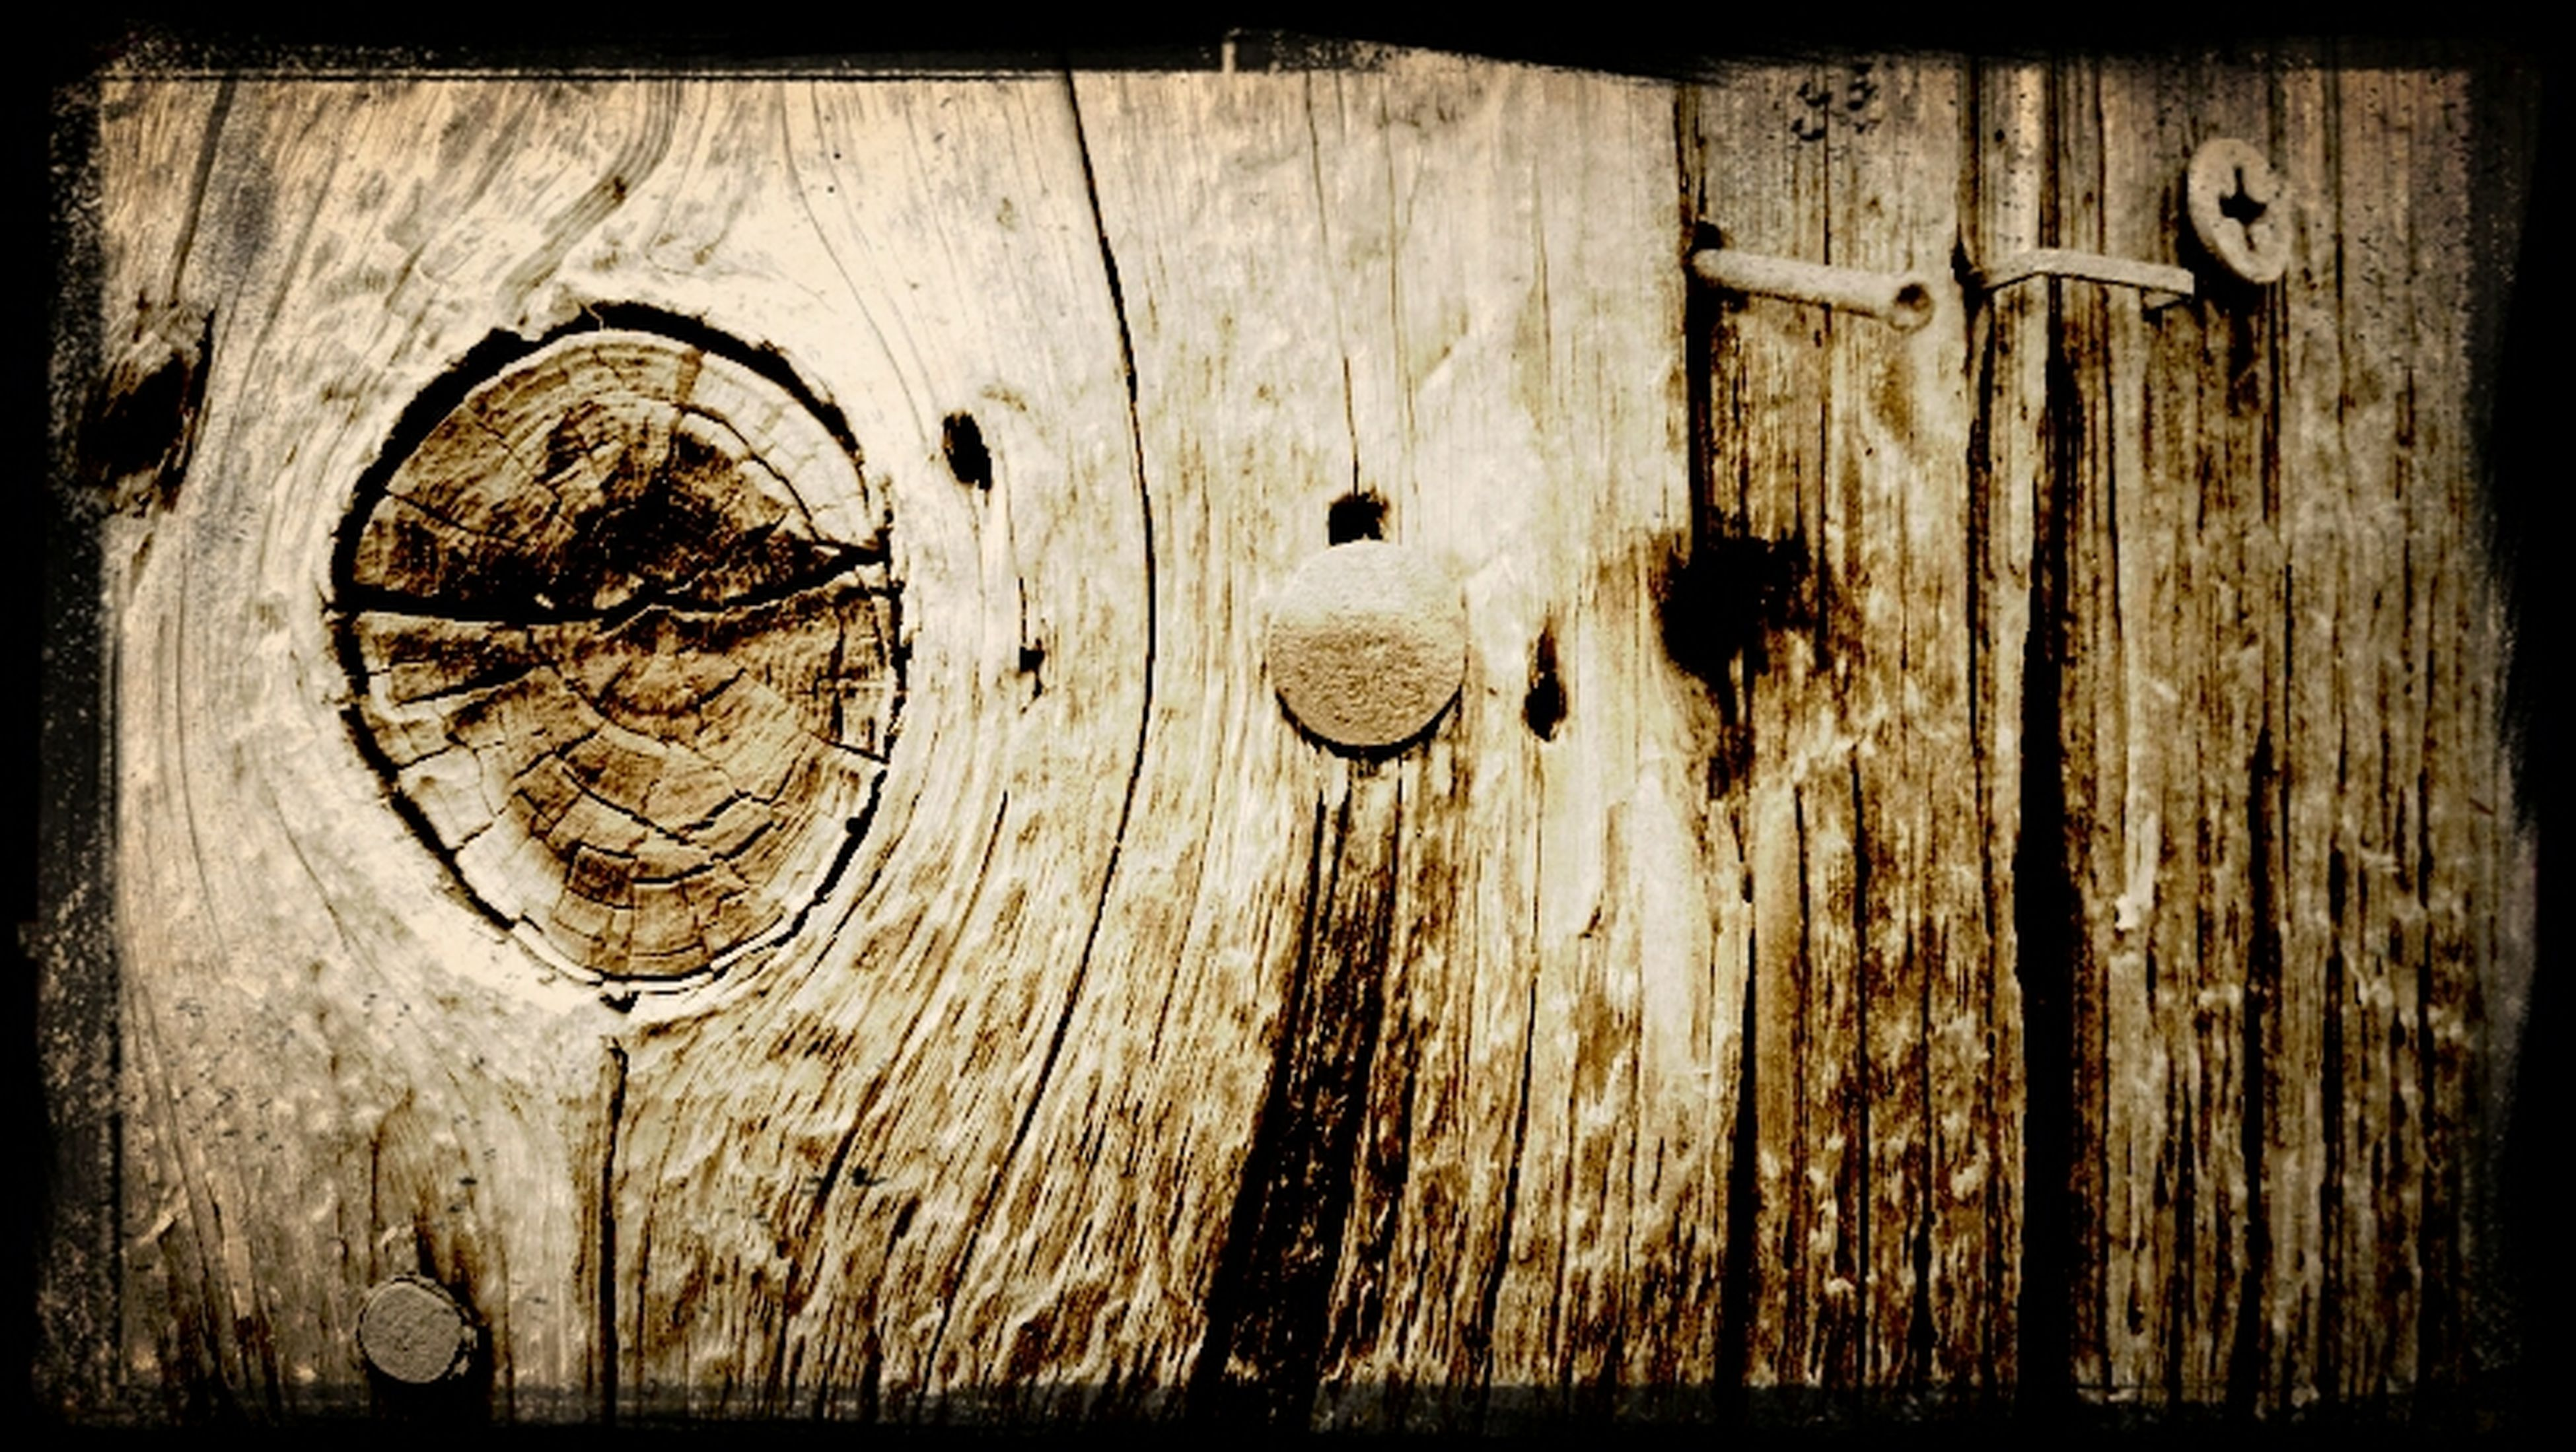 wood - material, transfer print, wooden, wood, auto post production filter, close-up, full frame, old, textured, backgrounds, plank, door, weathered, pattern, circle, no people, metal, outdoors, day, wall - building feature